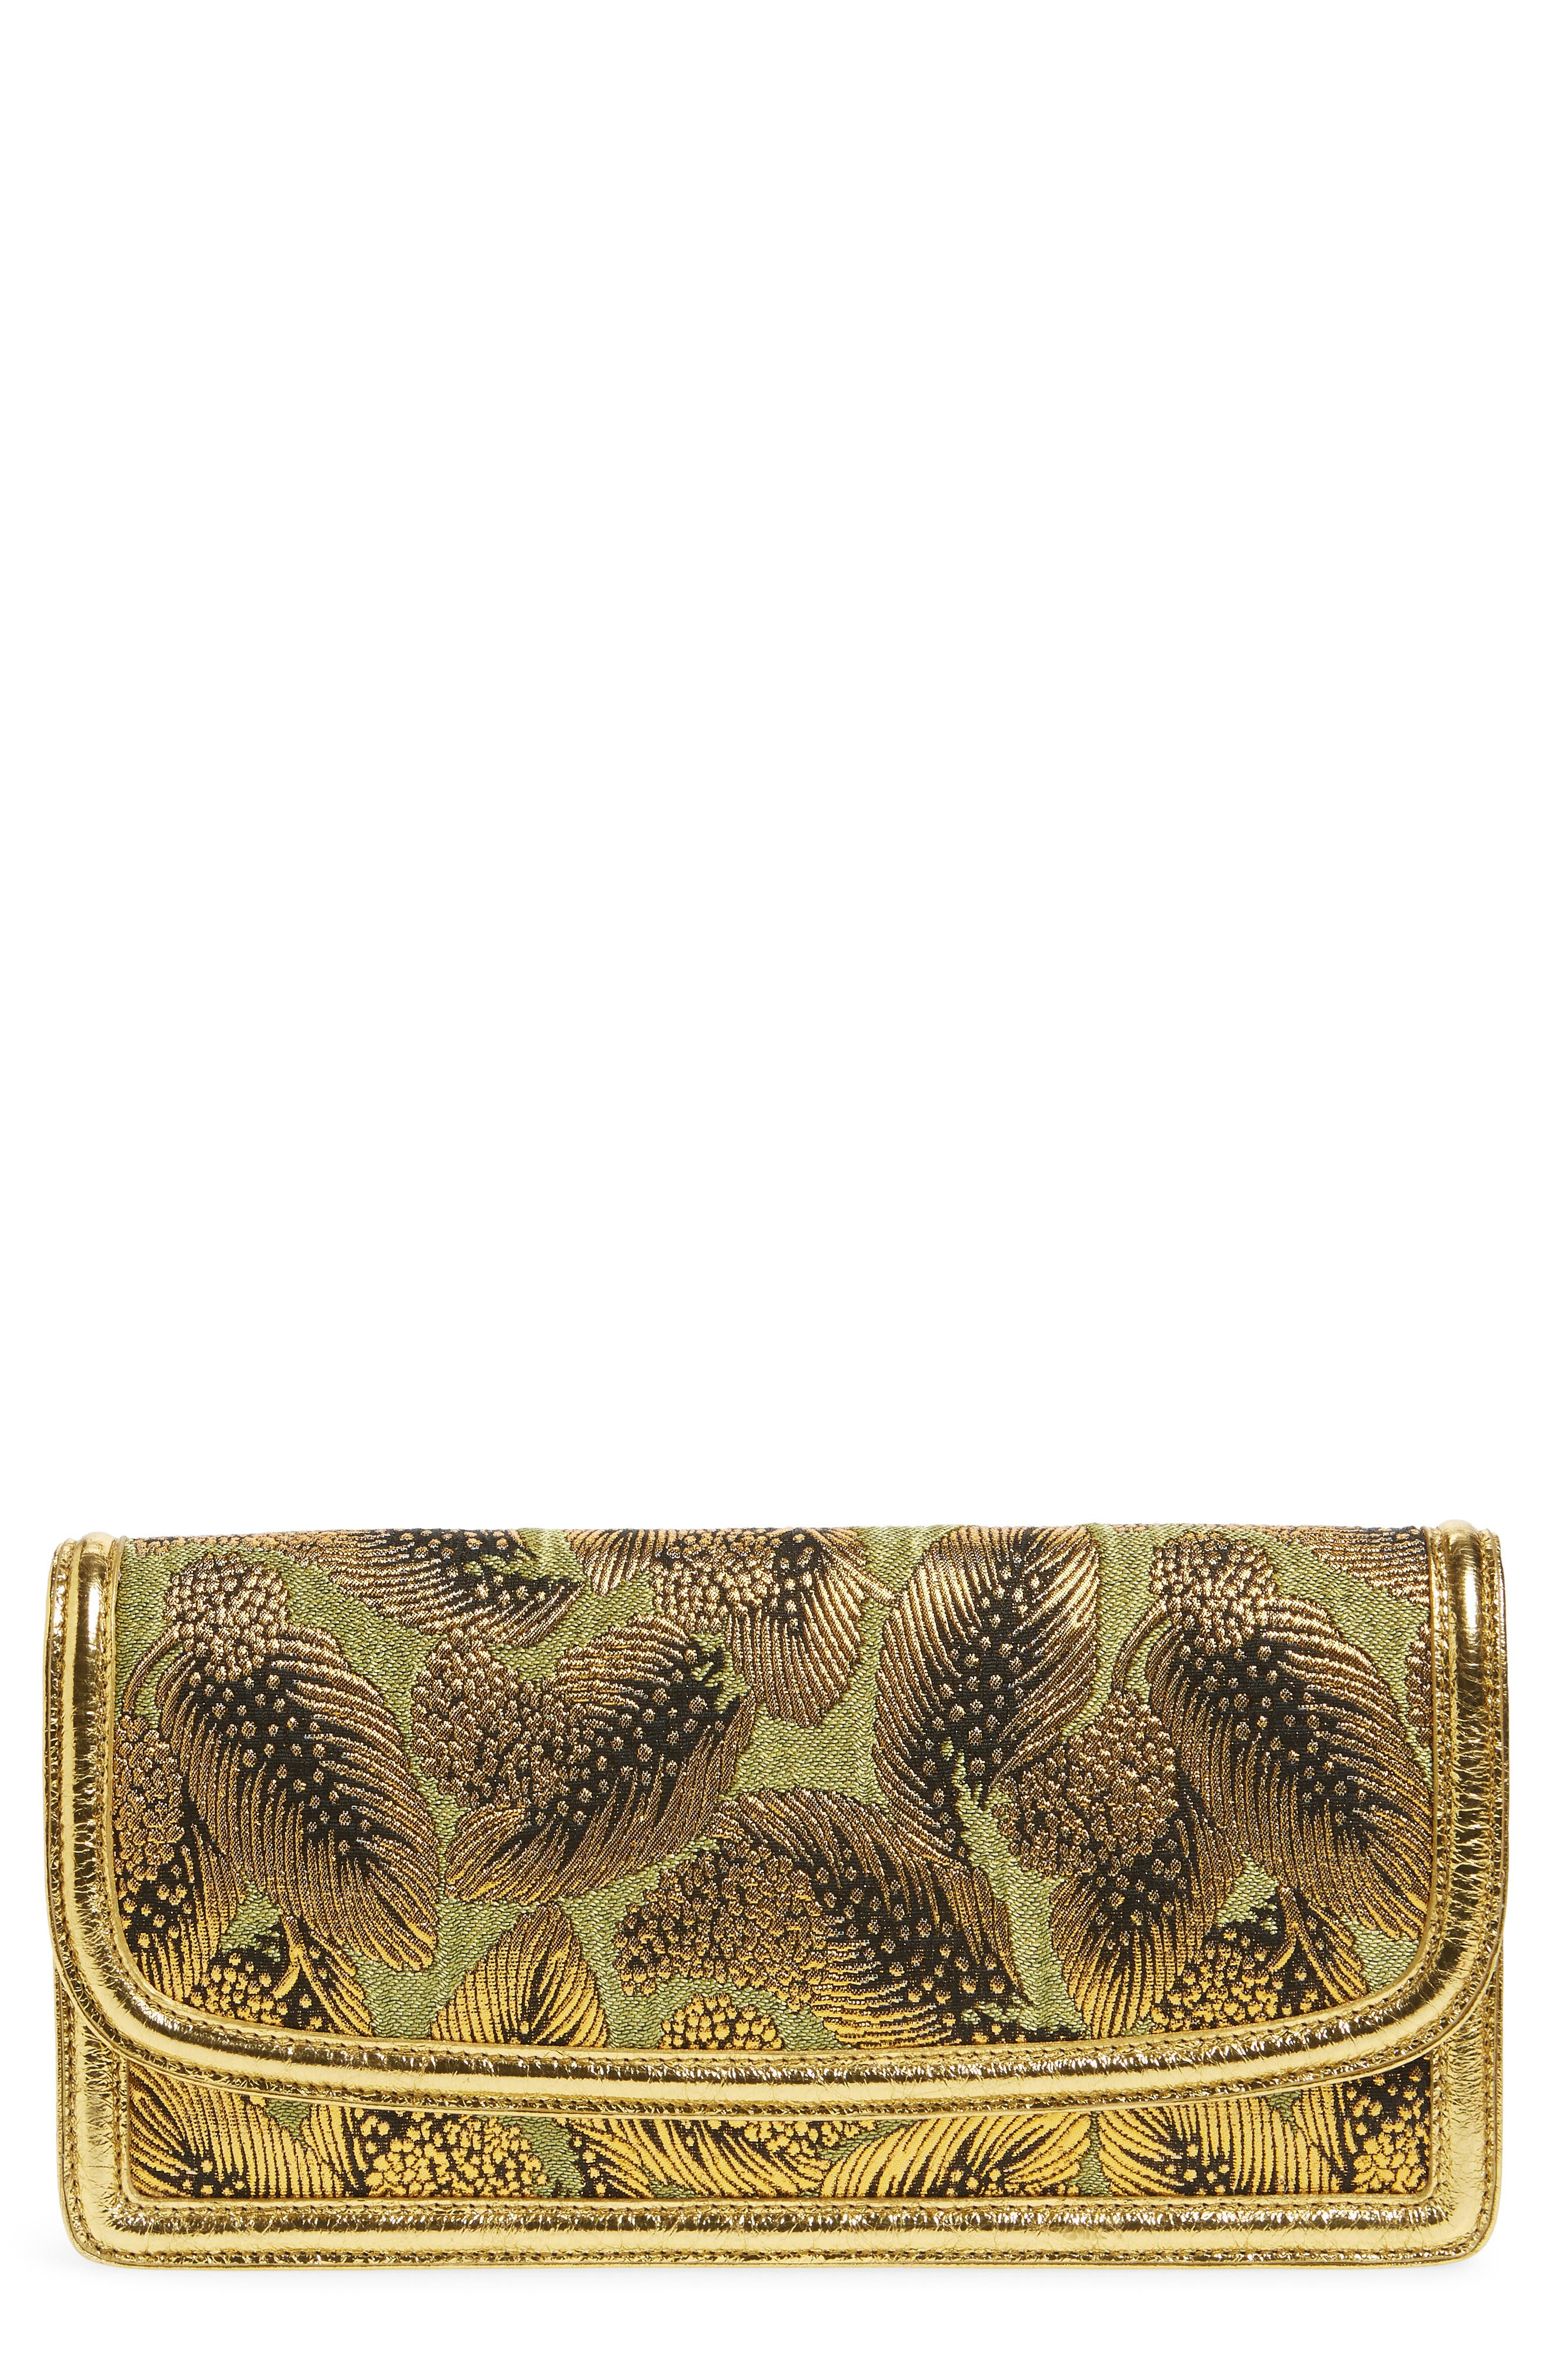 Dries van Noten Elongated Metallic Feather Envelope Clutch